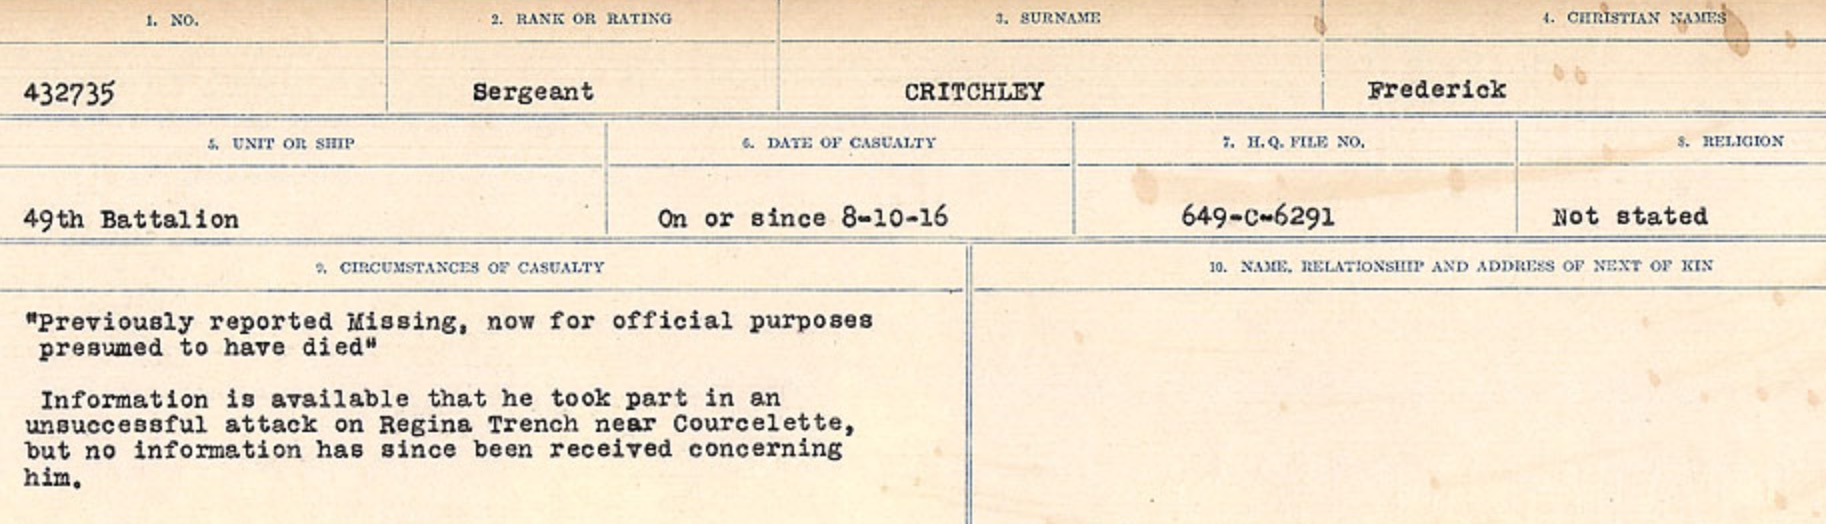 Circumstances of death registers– Source: Library and Archives Canada. CIRCUMSTANCES OF DEATH REGISTERS, FIRST WORLD WAR Surnames: CRABB TO CROSSLAND Microform Sequence 24; Volume Number 31829_B016733. Reference RG150, 1992-93/314, 168. Page 555 of 788